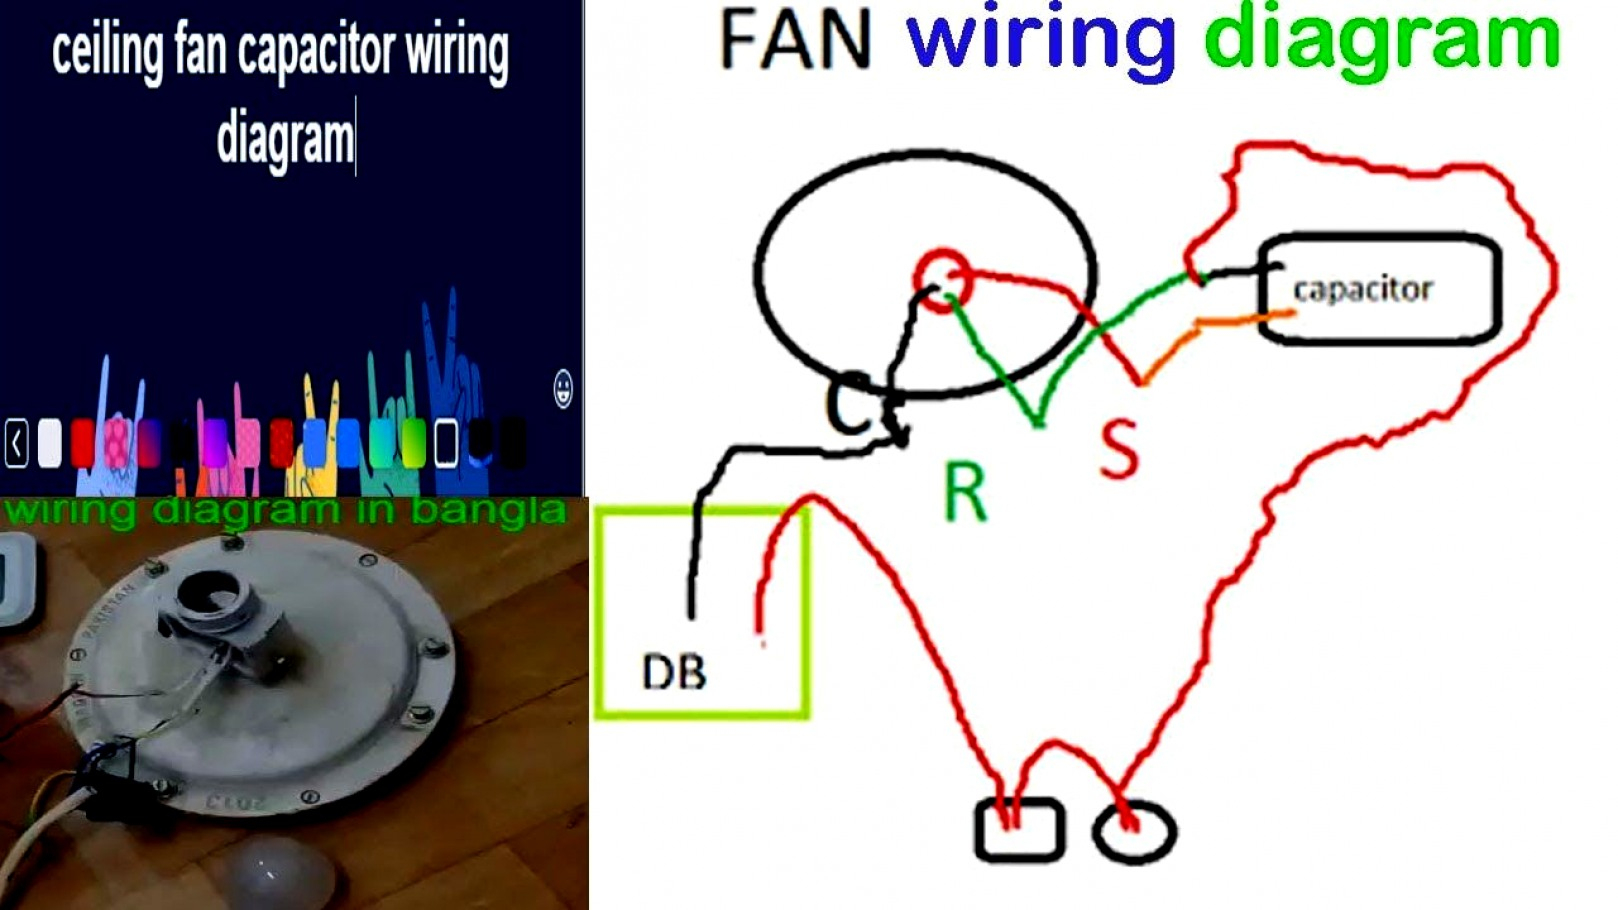 3 Wire Capacitor Ceiling Fan Wiring Schematic | Wiring Diagram - Ceiling Fan Wiring Diagram With Capacitor